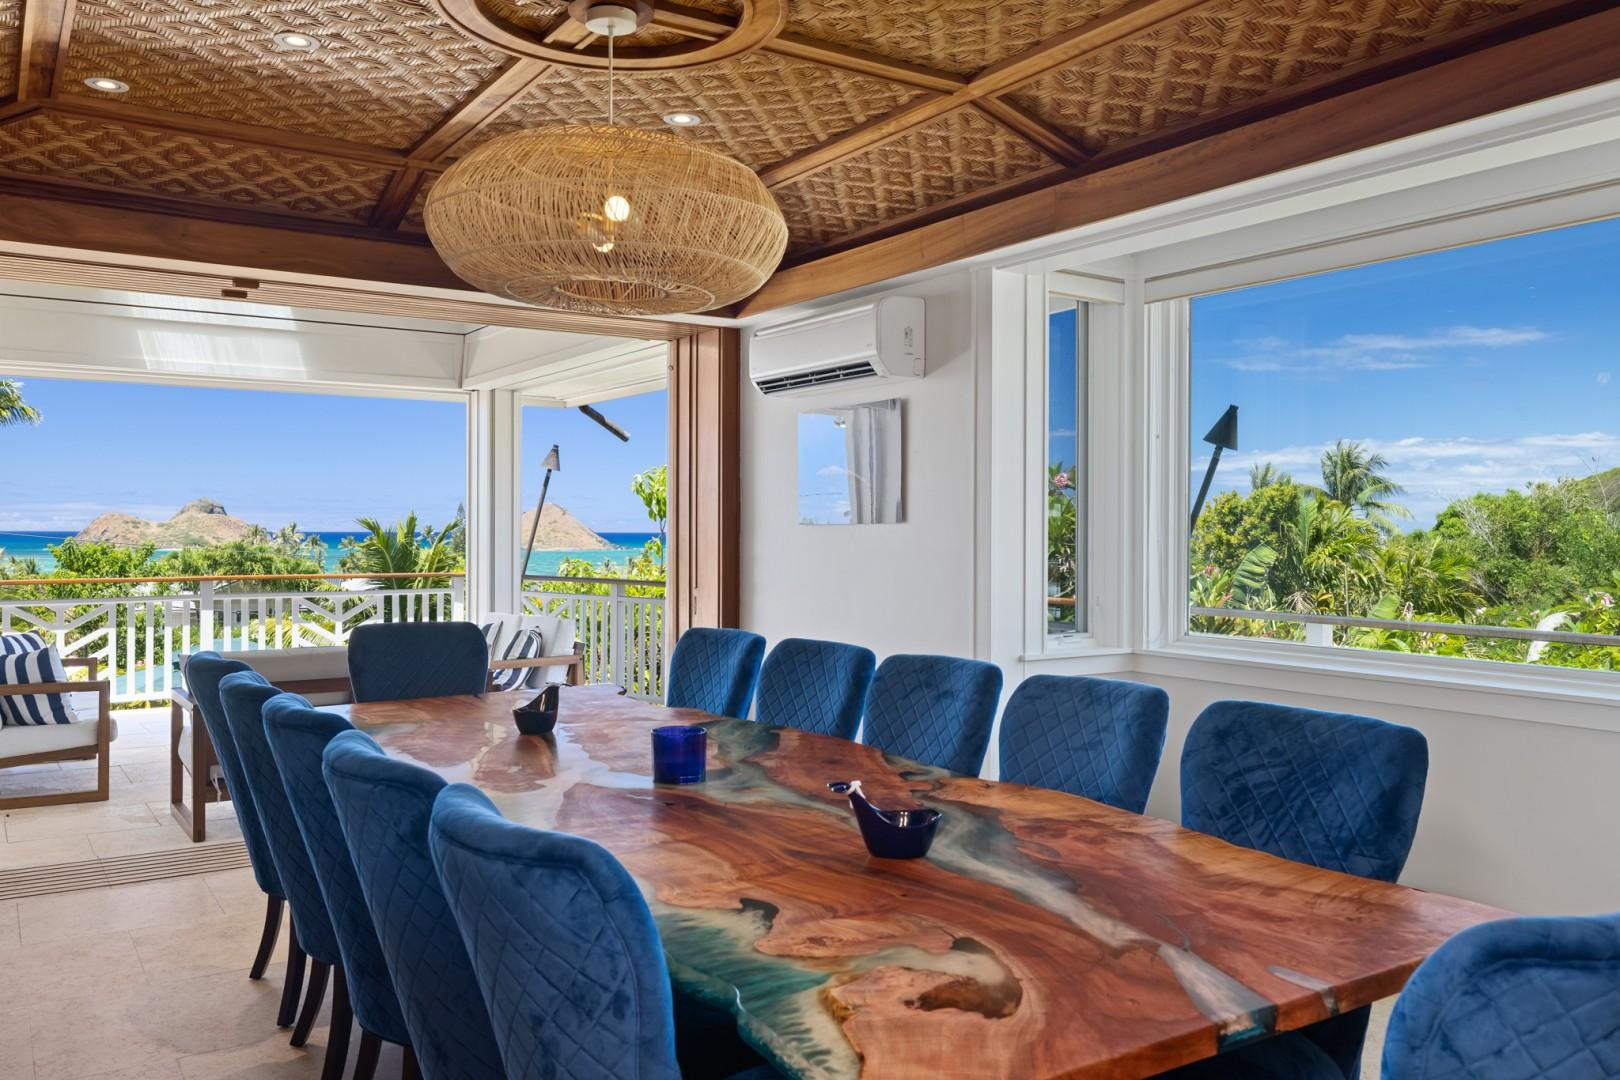 Formal dining with ocean view